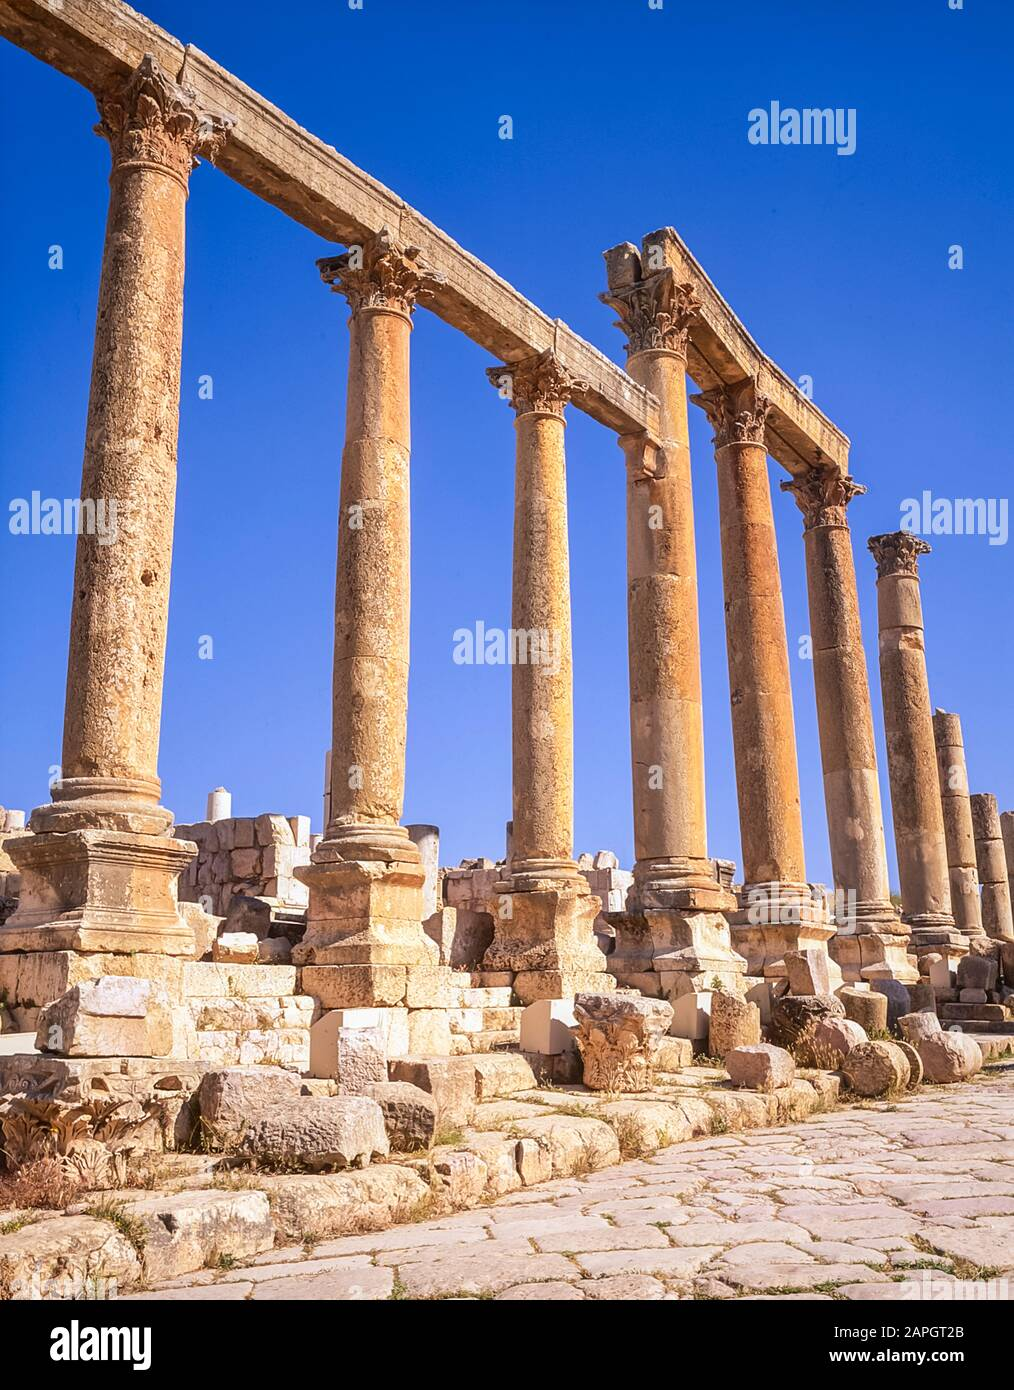 Jordan Colonnades On The Once Main Street Of The Ancient Roman